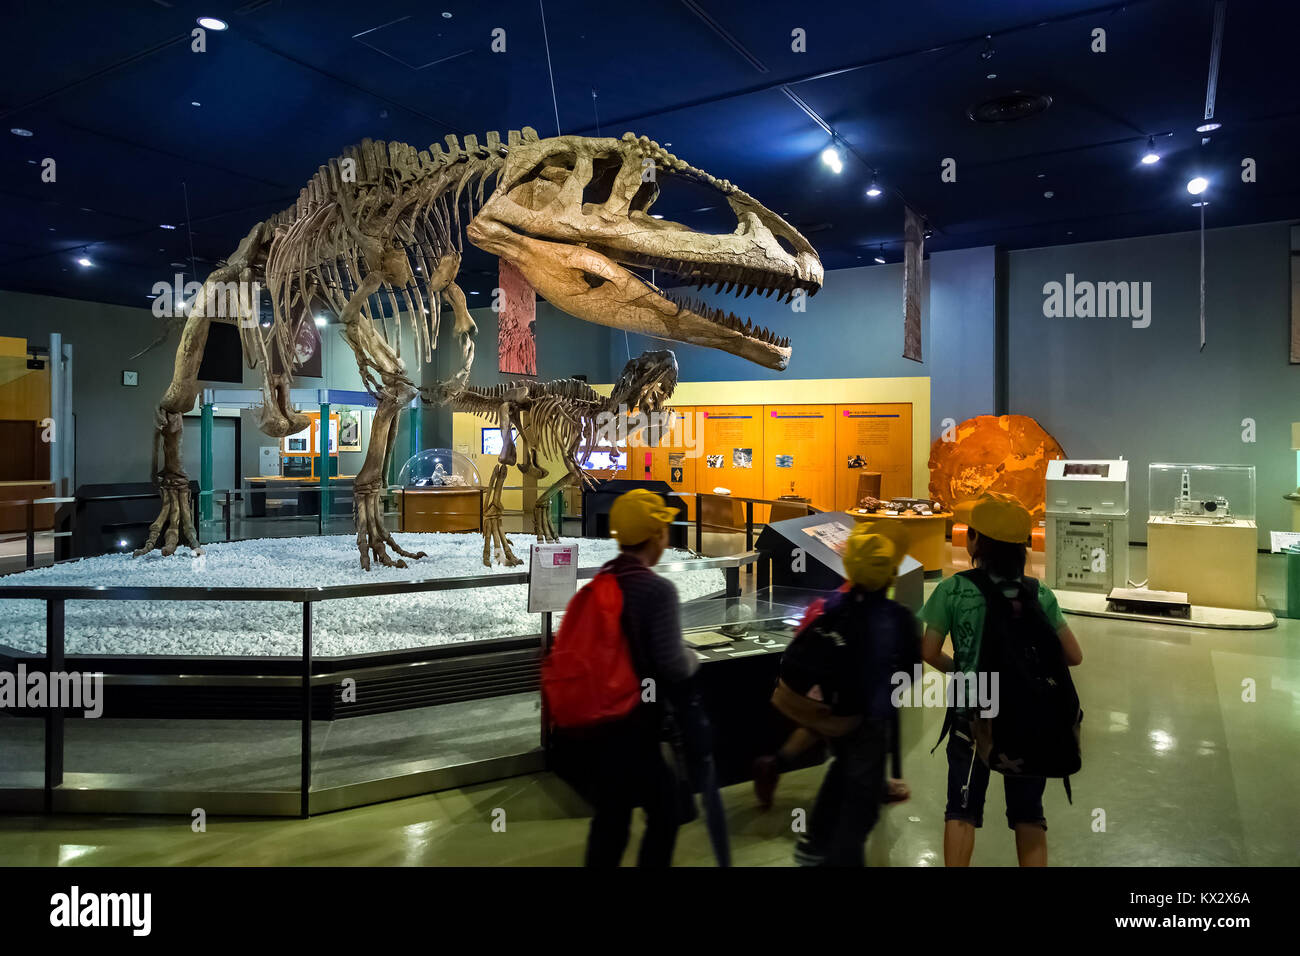 NAGOYA, JAPAN - NOVEMBER 18, 2015: Dinosaur skeletons displayed at the first floor of Nagoya City Science Museum, the exhibition room is one of the mo Stock Photo